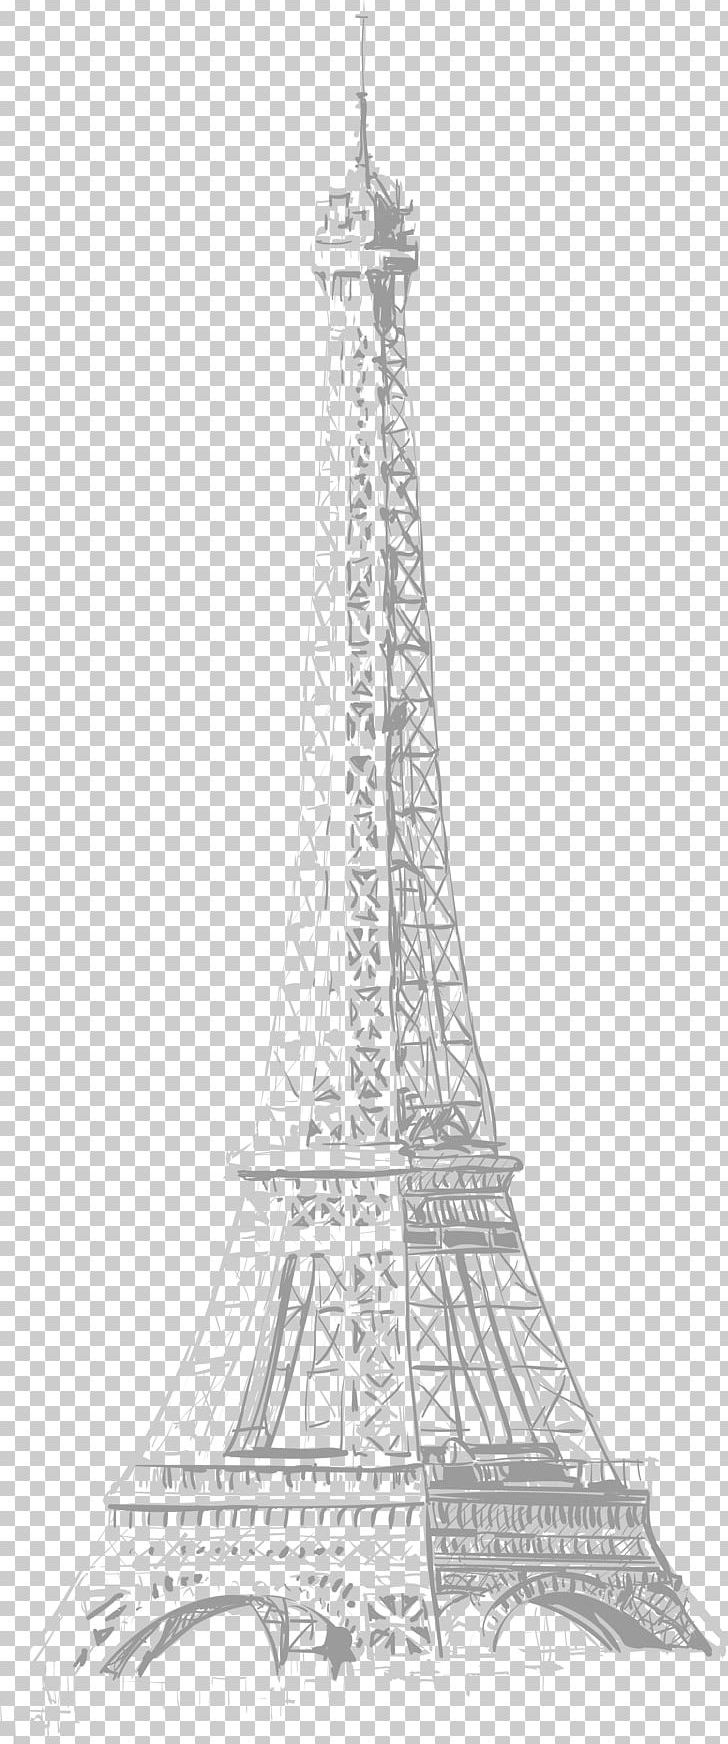 Eiffel Tower Drawing PNG, Clipart, Adobe Illustrator.